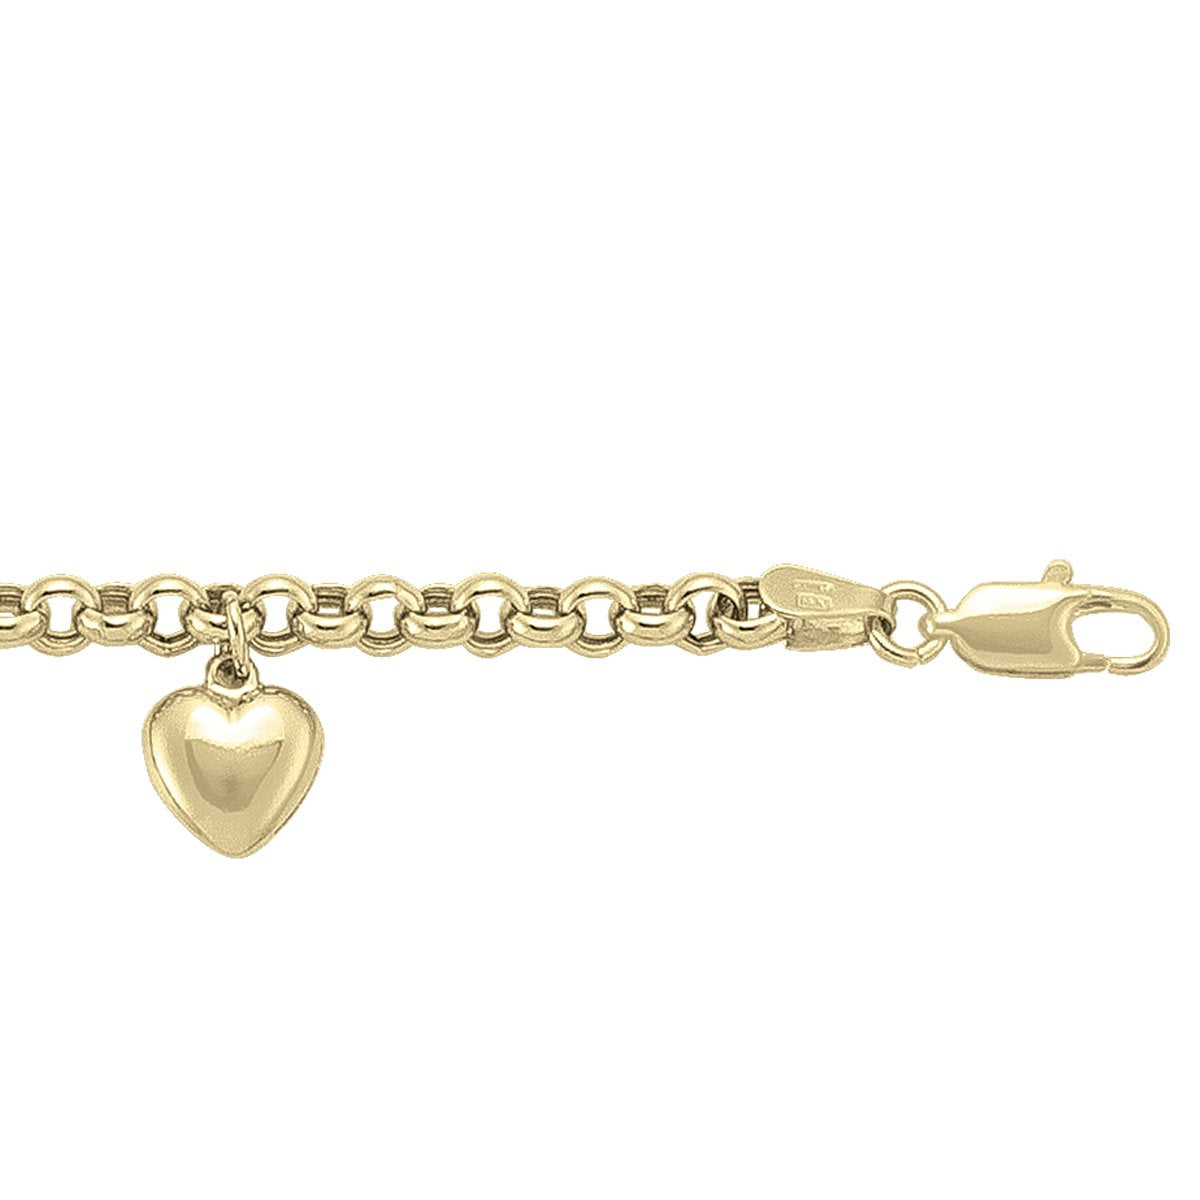 YELLOW GOLD HOLLOW ROLO CHARM BRACELET